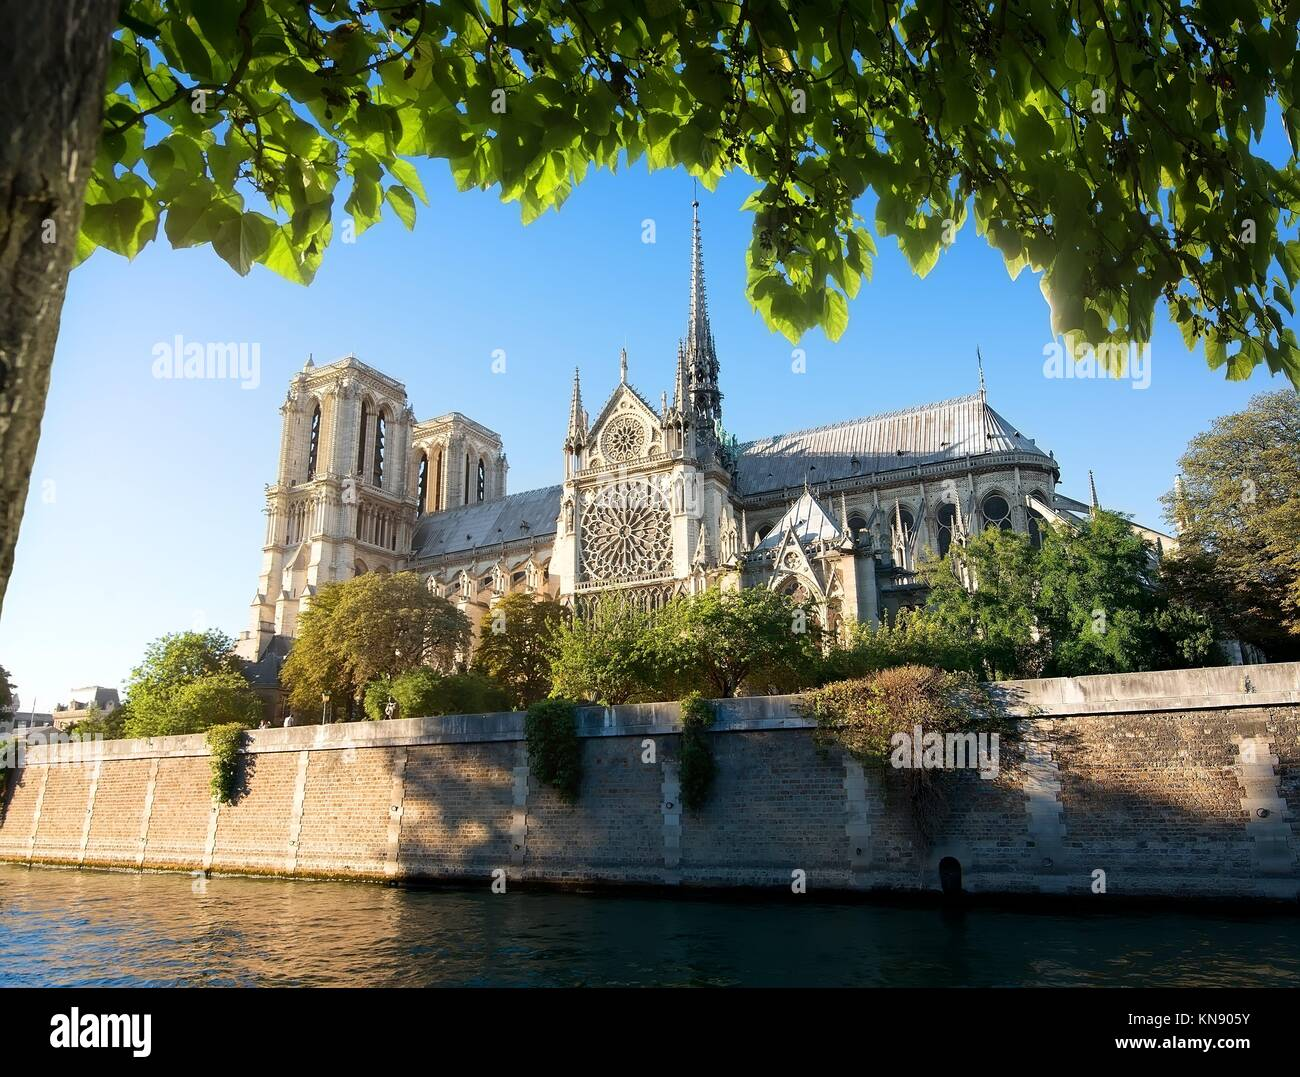 Majestic cathedral Notre Dame de Paris in France. - Stock Image